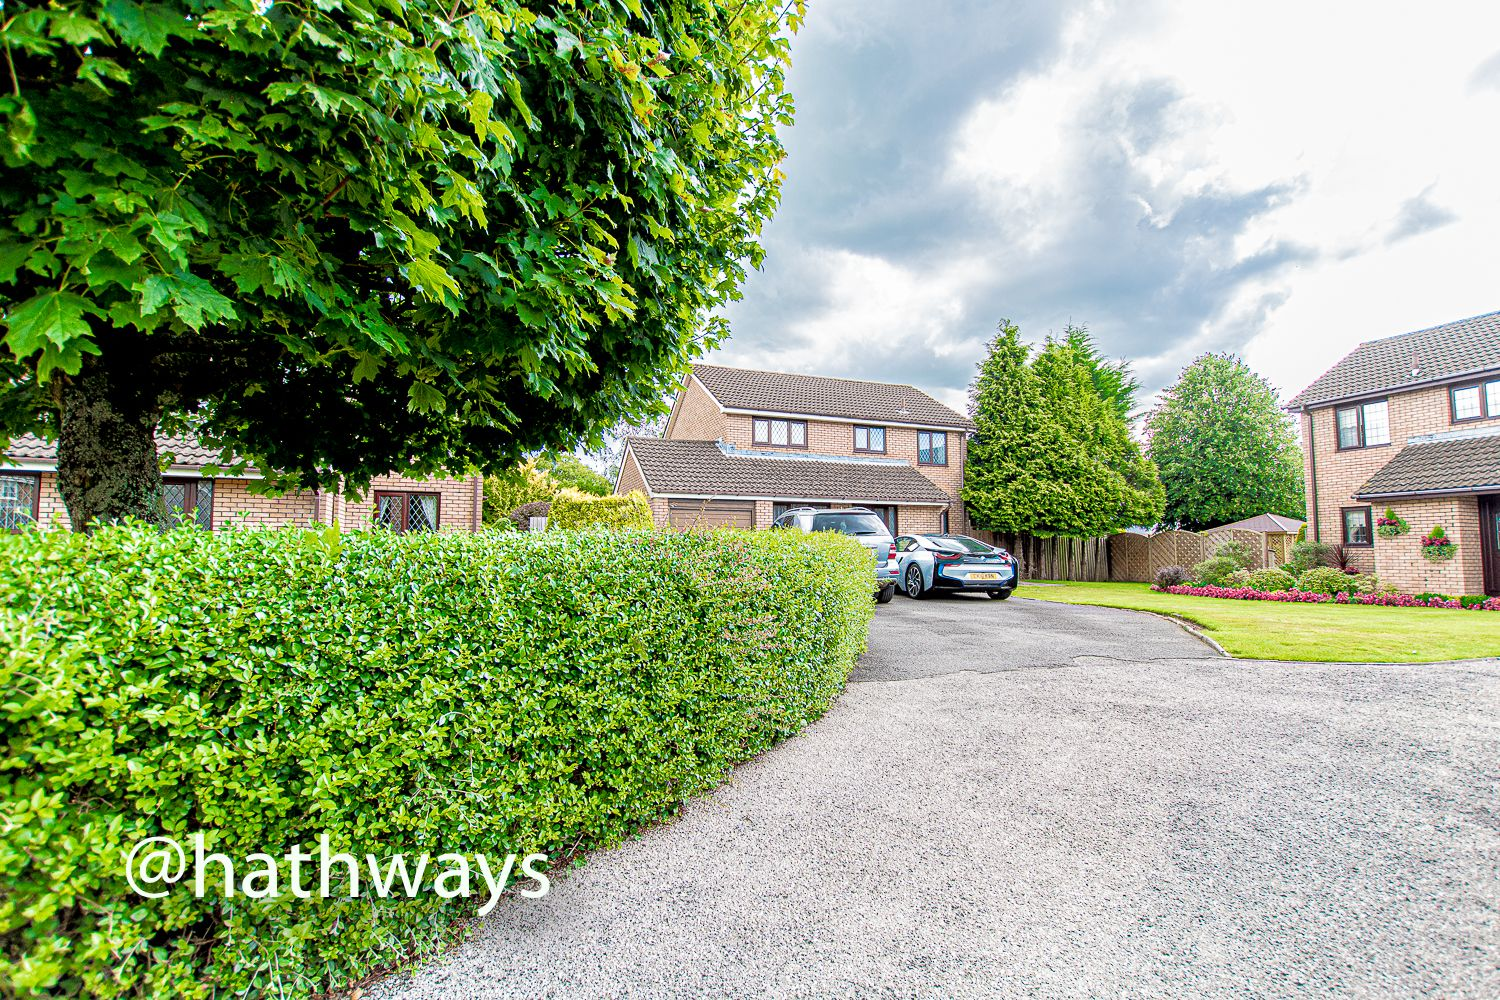 4 bed house for sale in Springfield Close  - Property Image 45